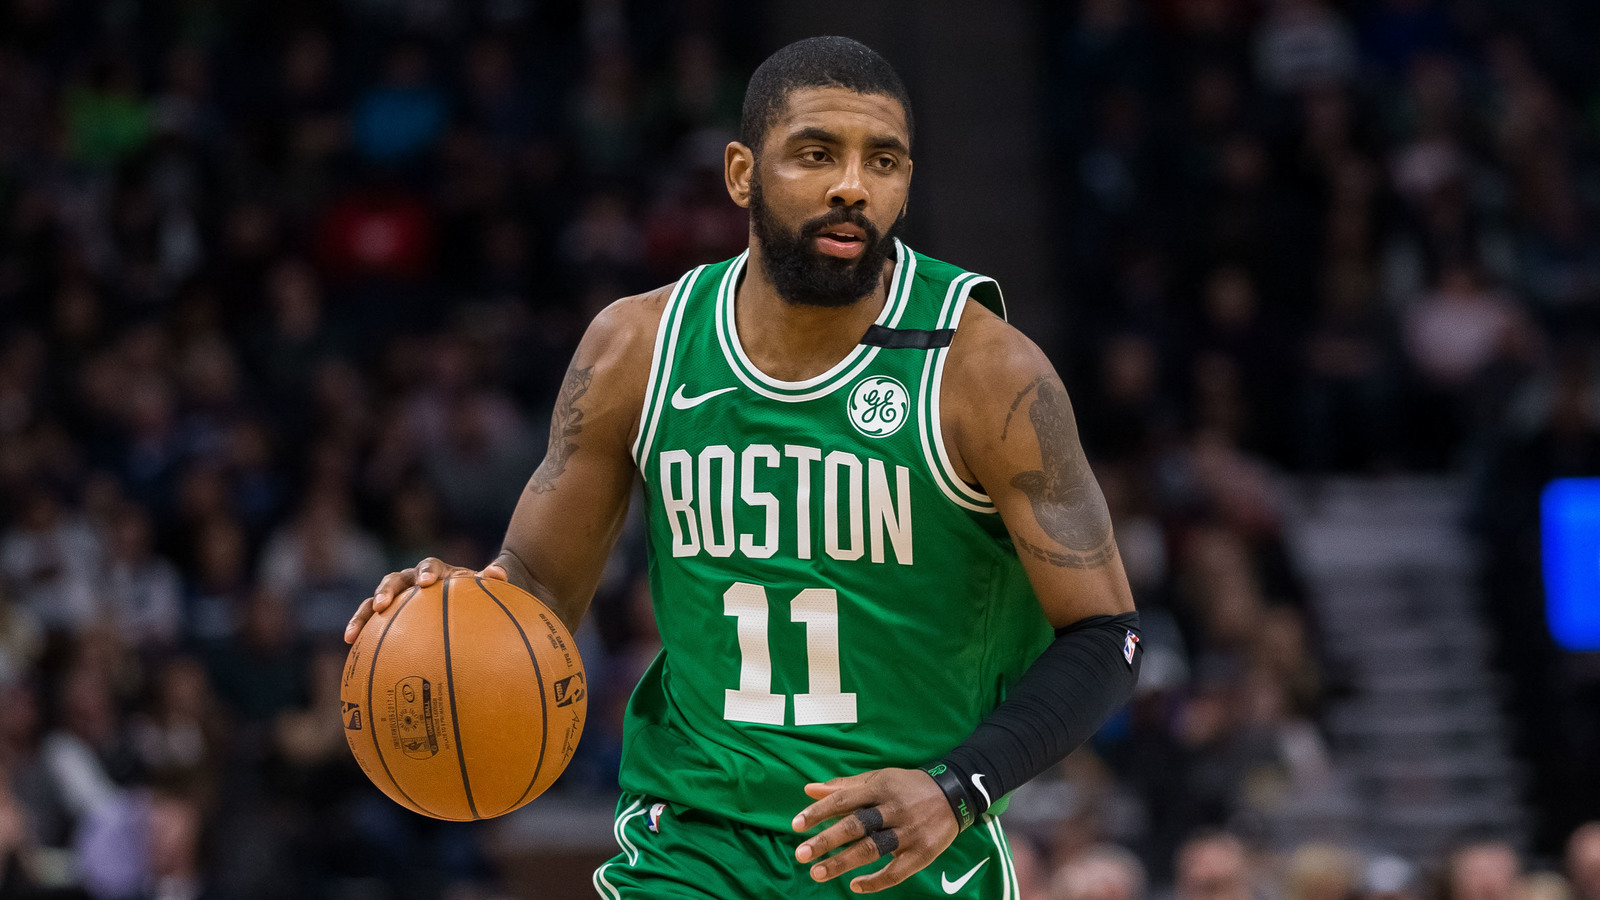 Boston should be worried about Kyrie Irving